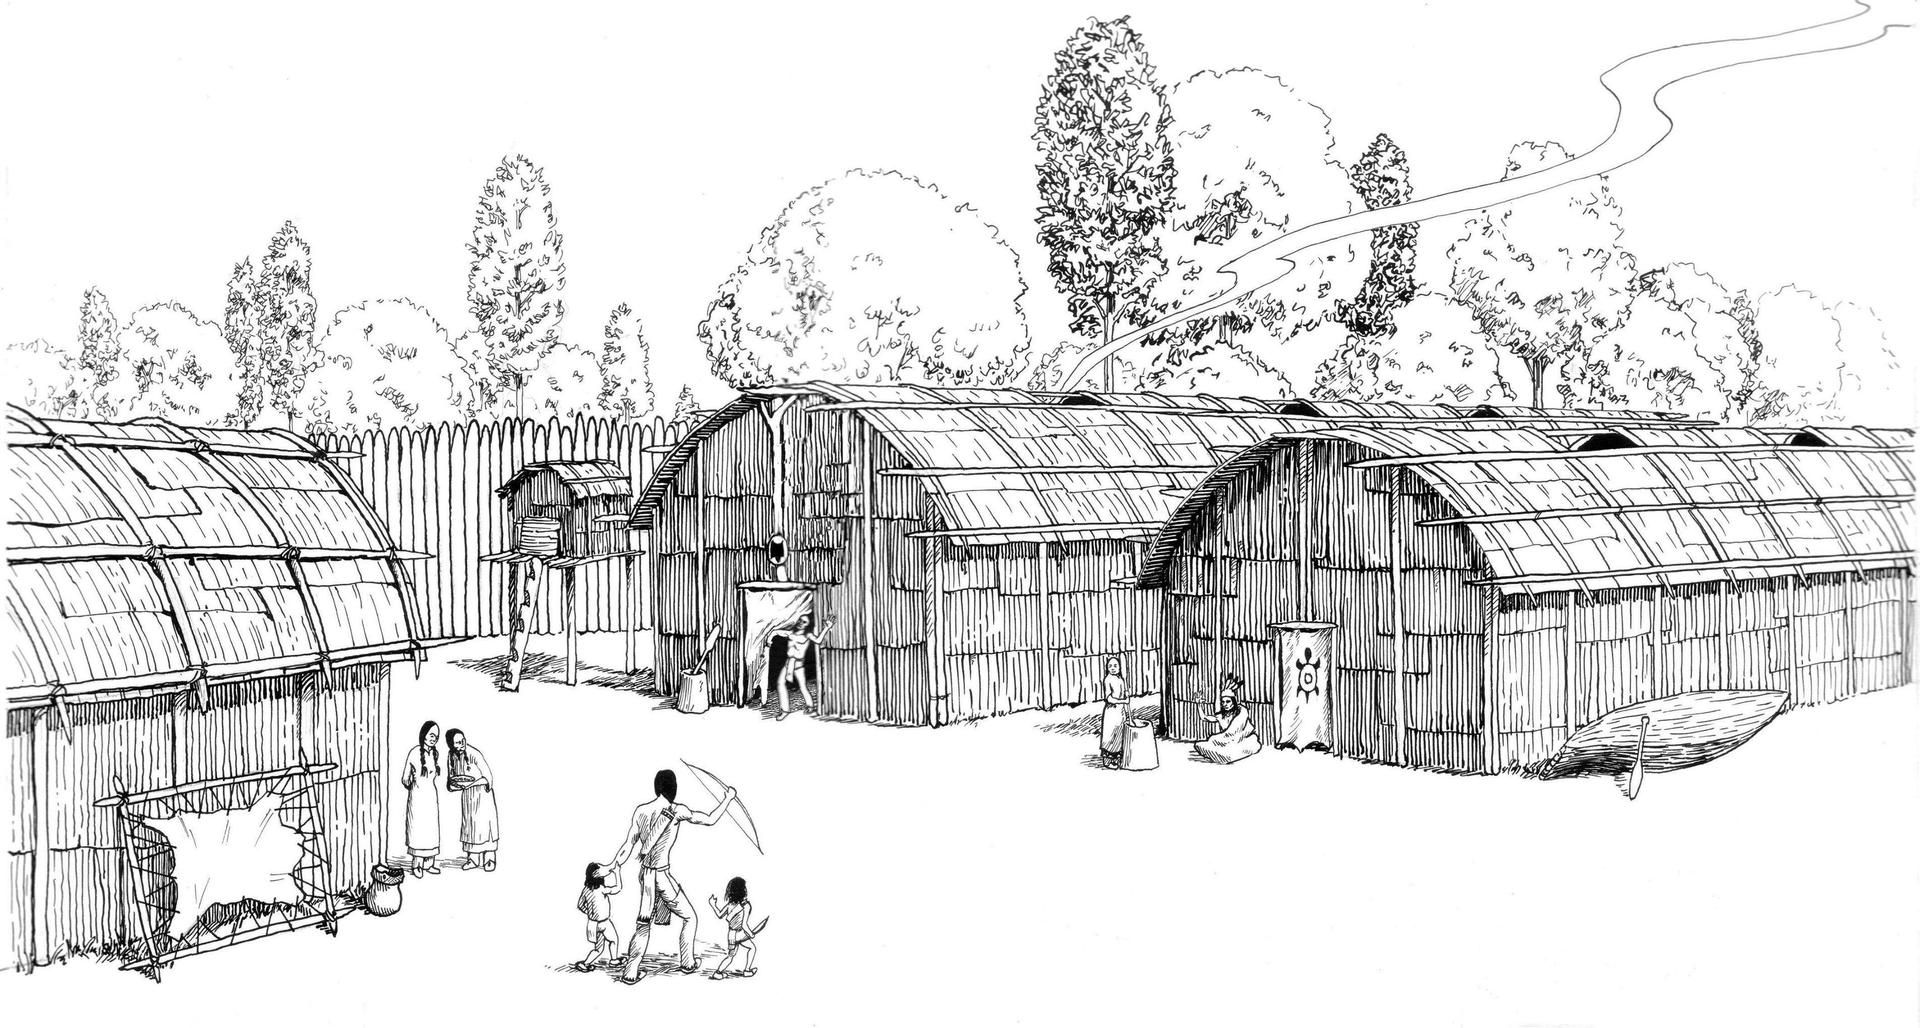 Representation of an Iroquois village of longhouses by